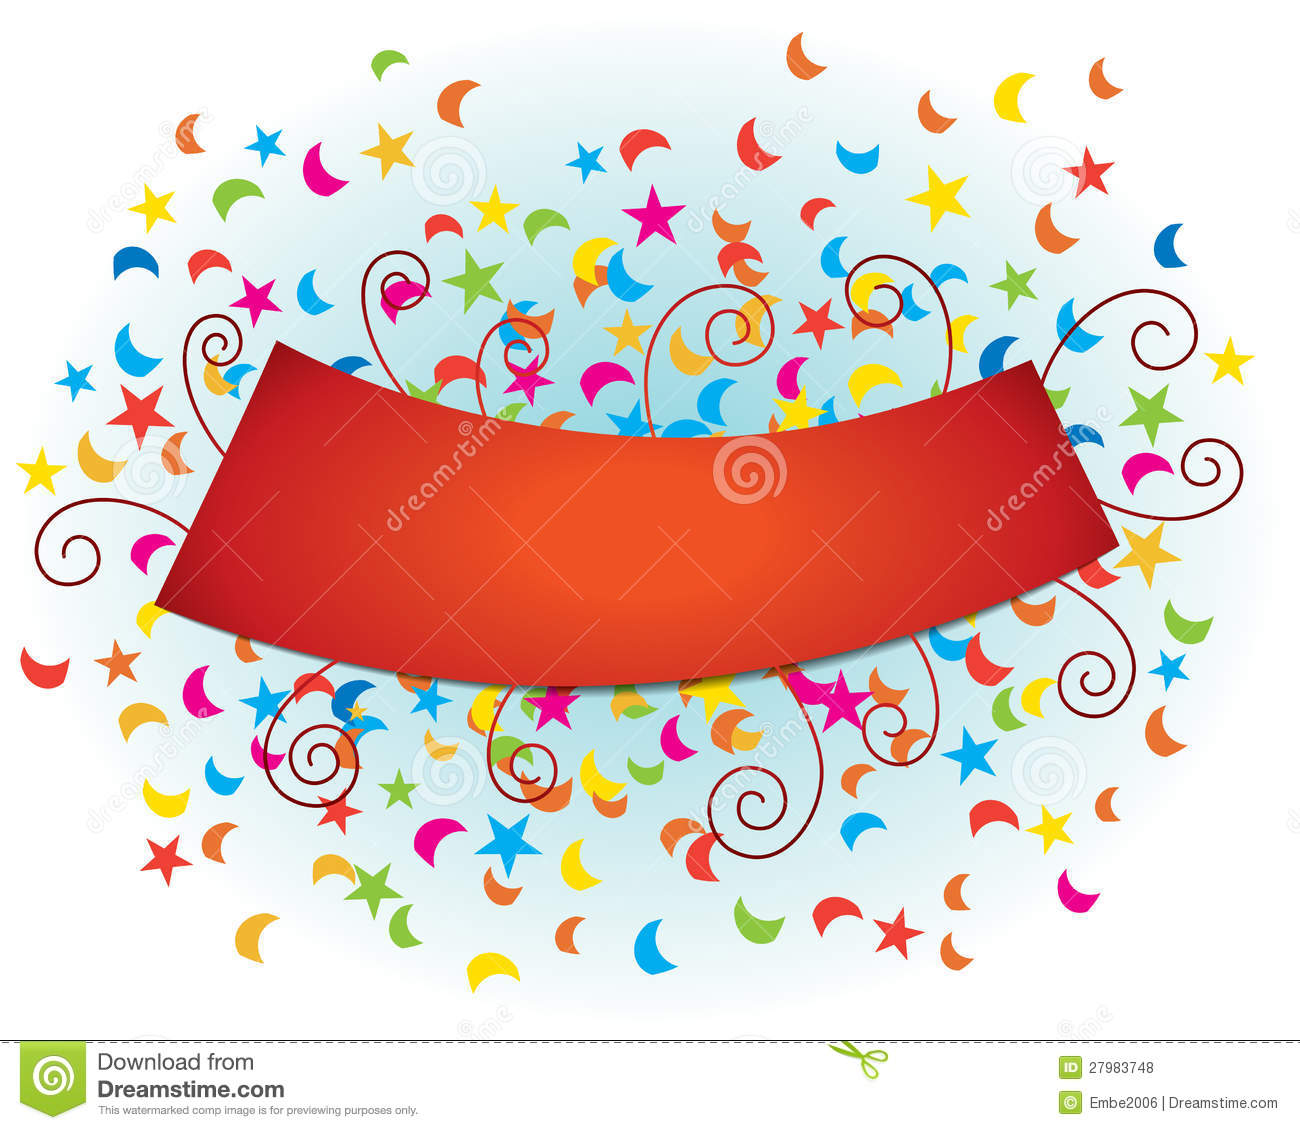 . Celebrate clipart banner